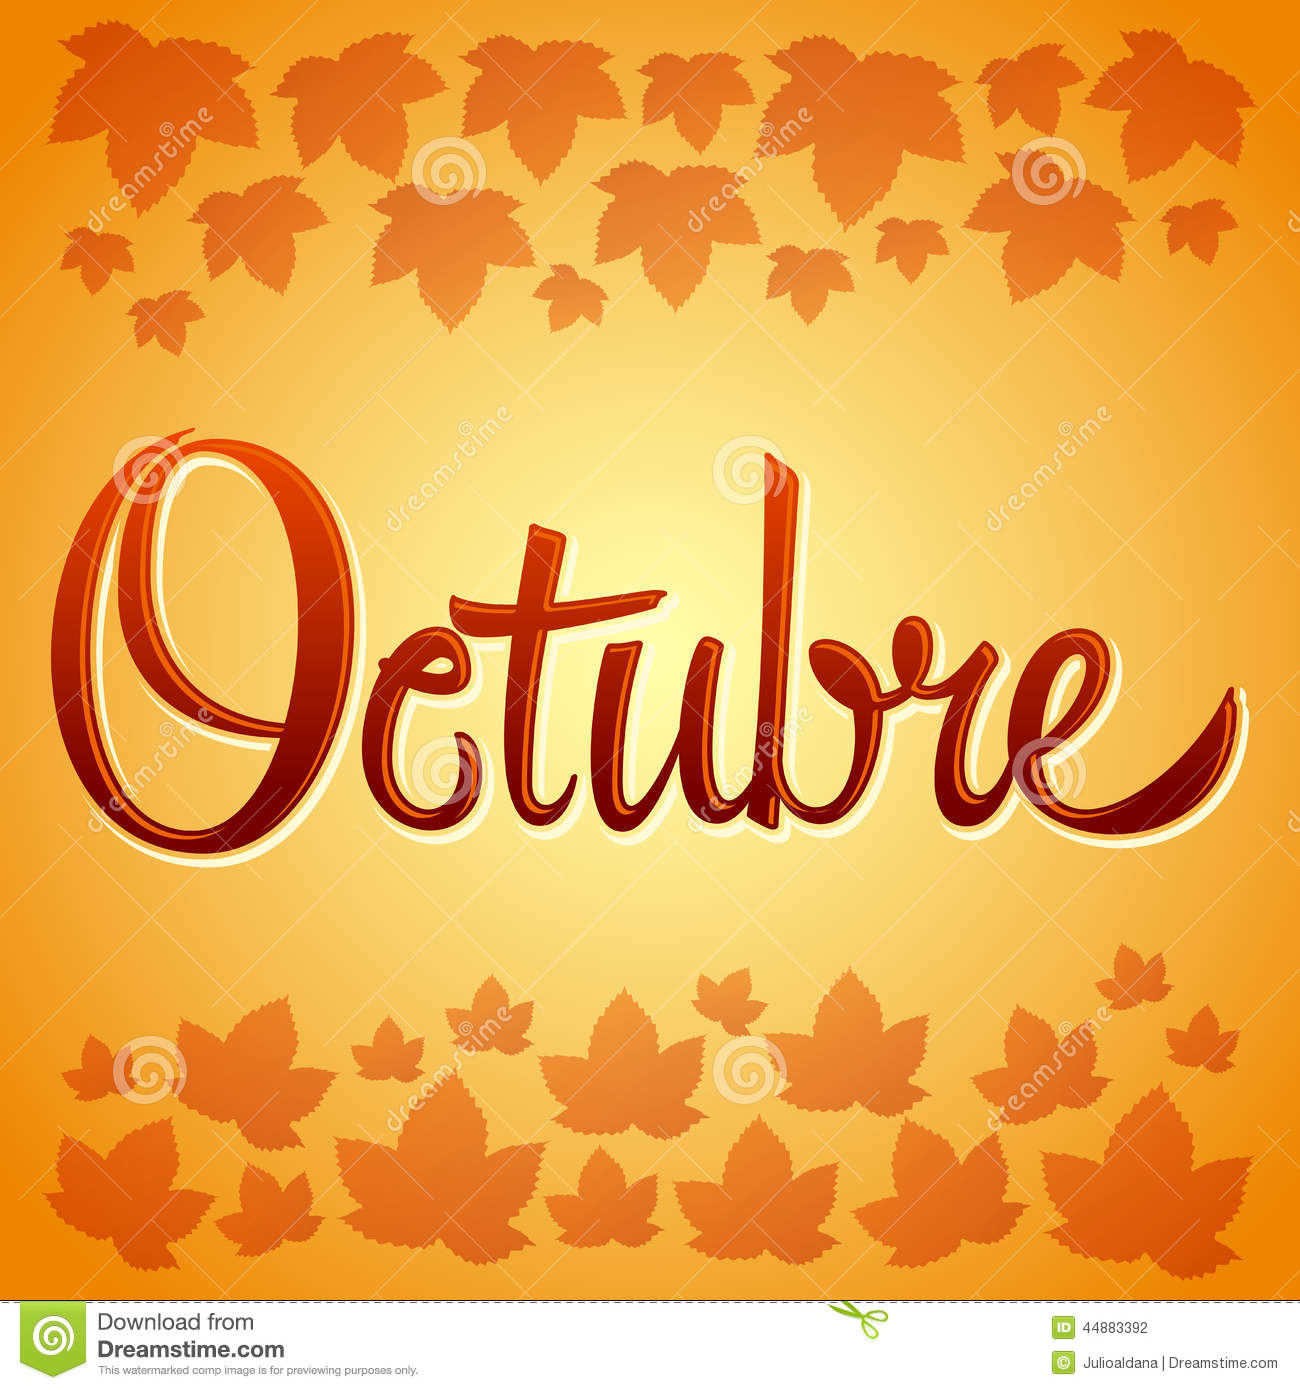 octubre october spanish vector sign stock vector image time travel clipart clock with human eye Time Travel Background